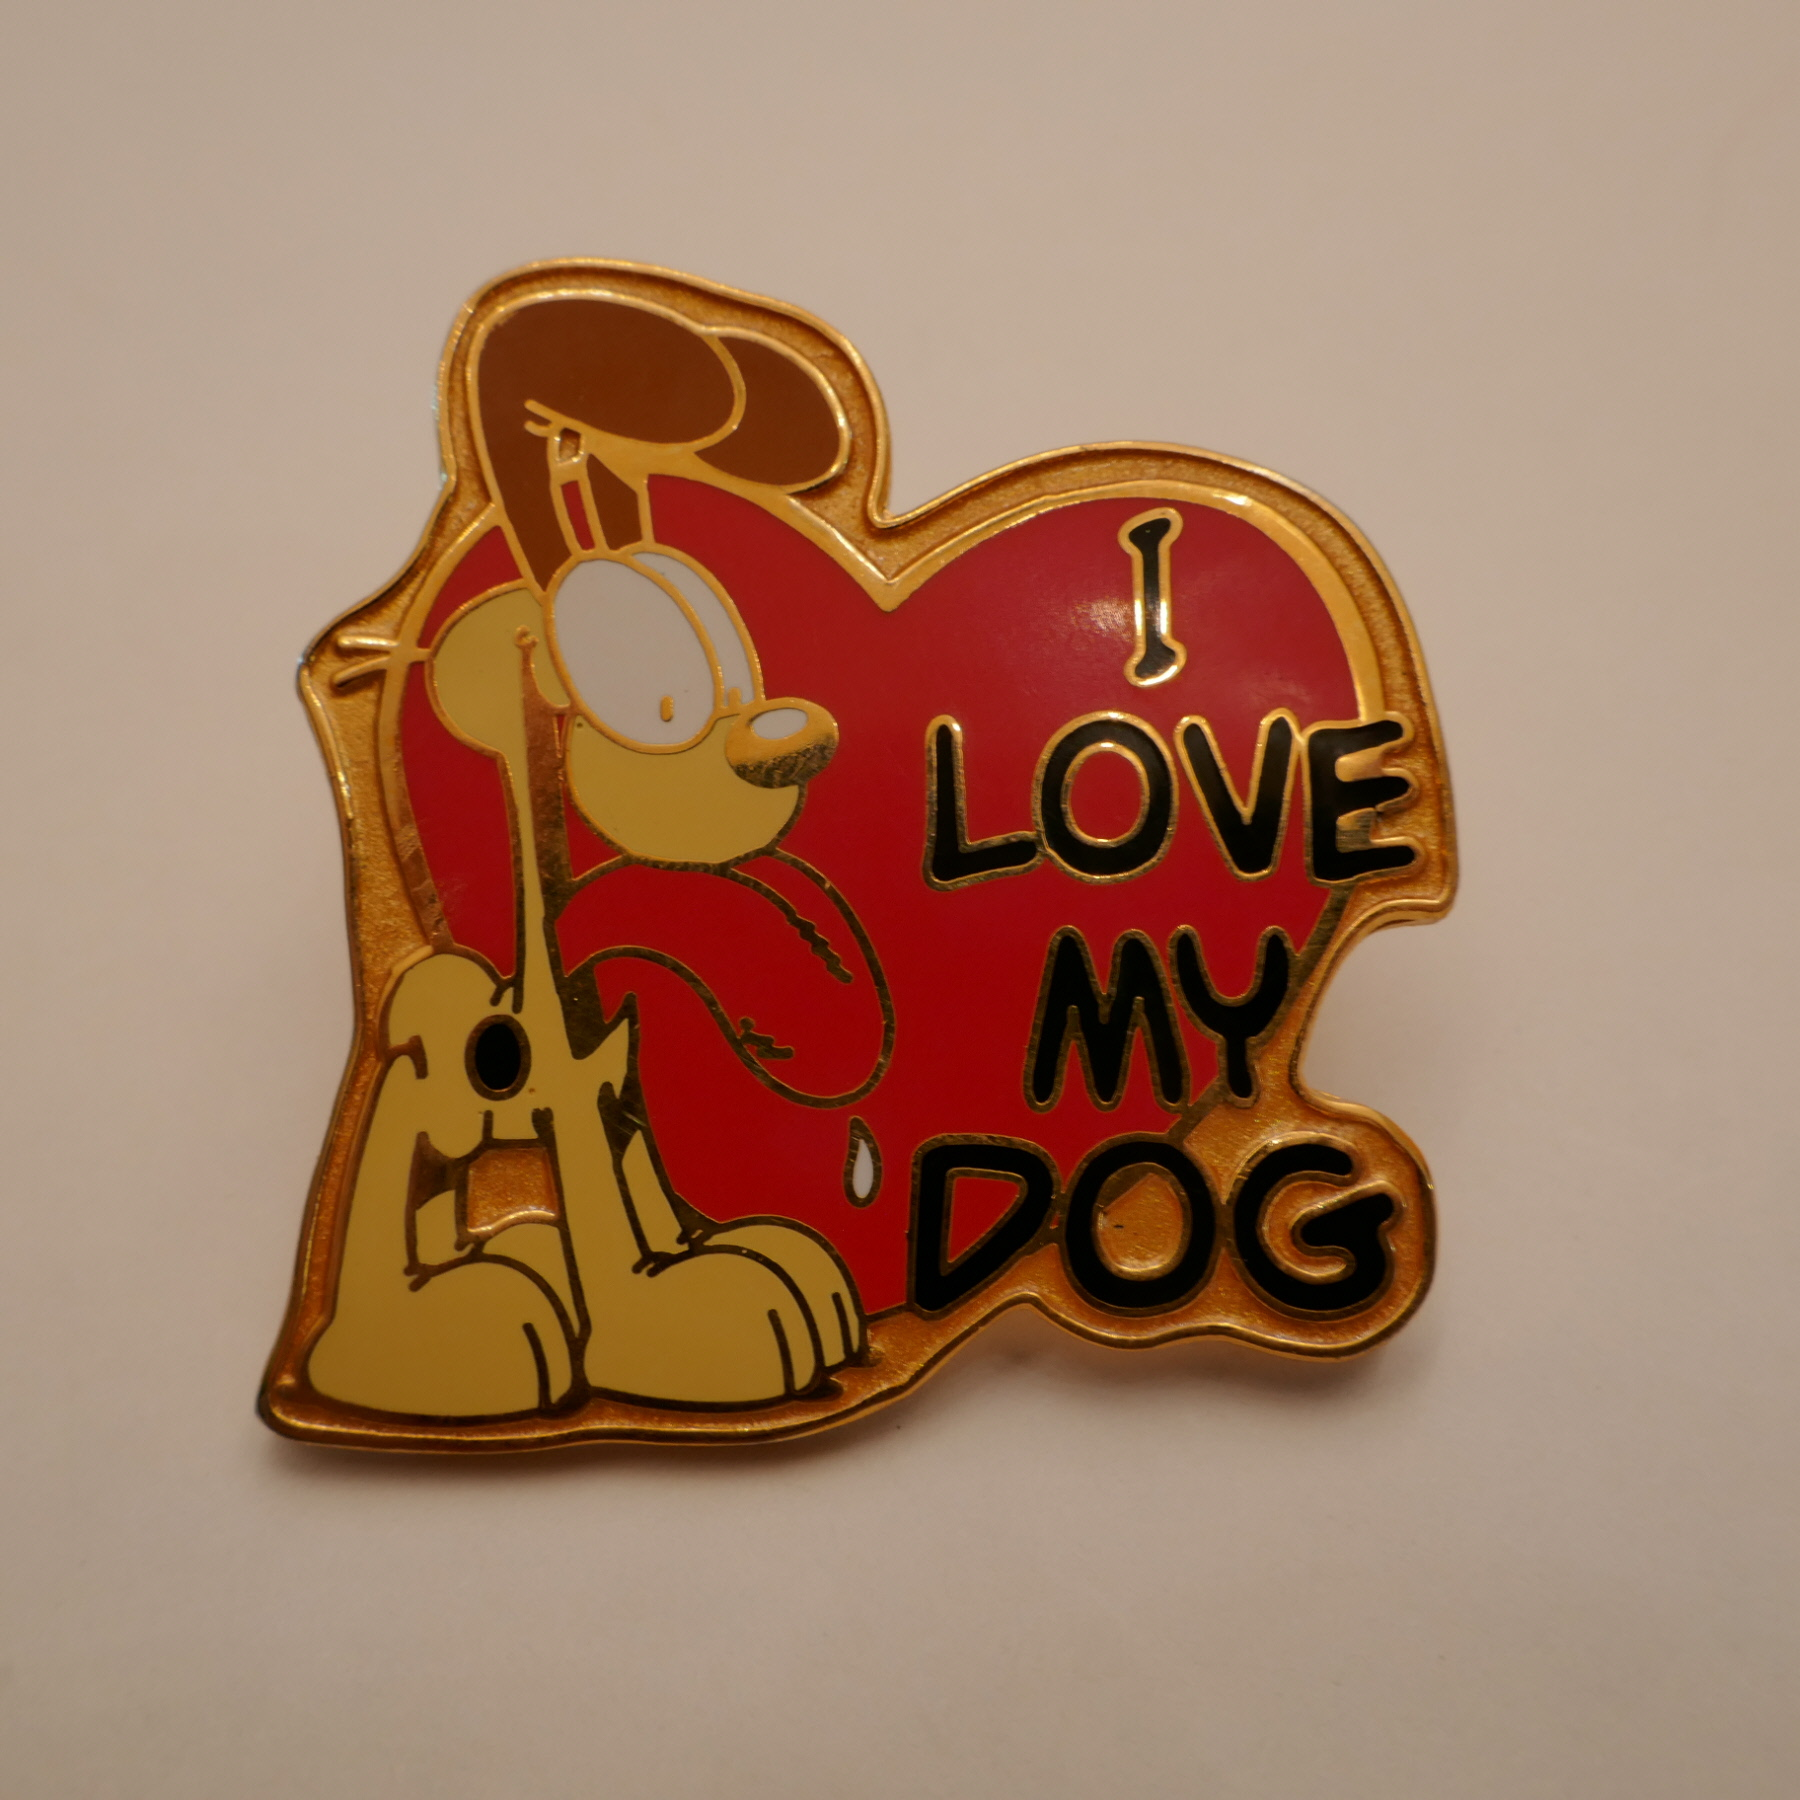 Odie I LOVE MY DOGS pins